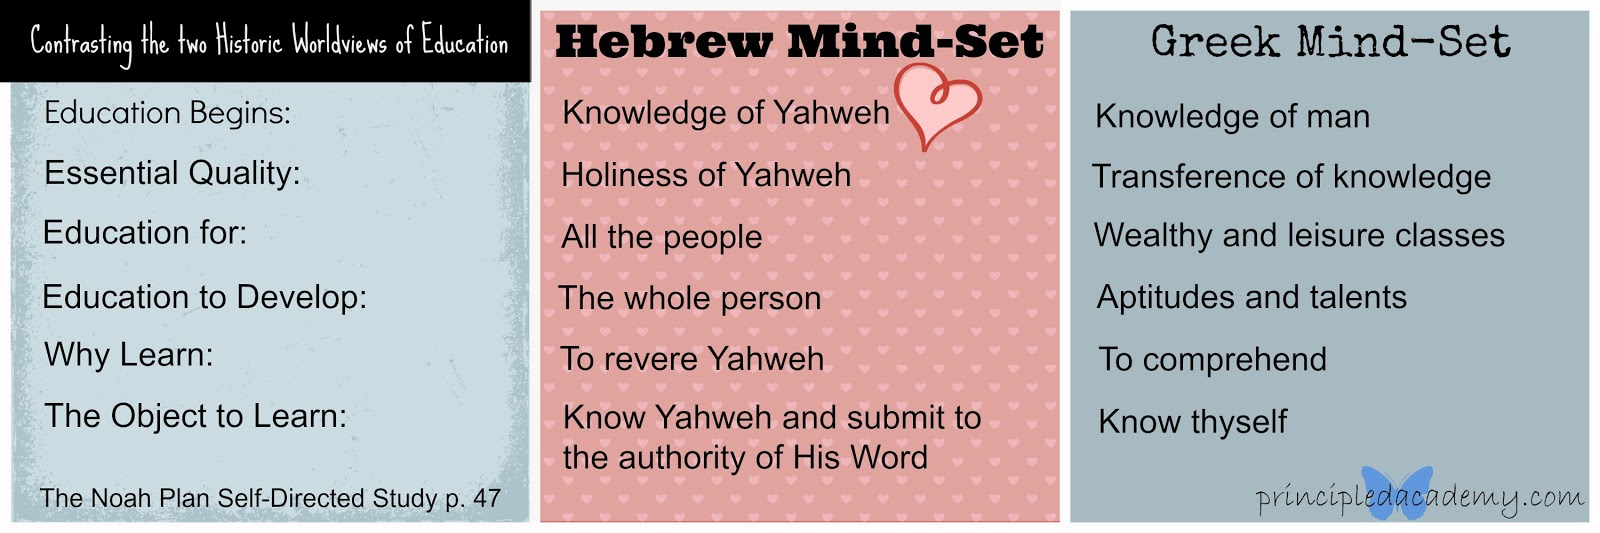 Hebrew Education, Hebrew Mind-set, Greek Mind-Set